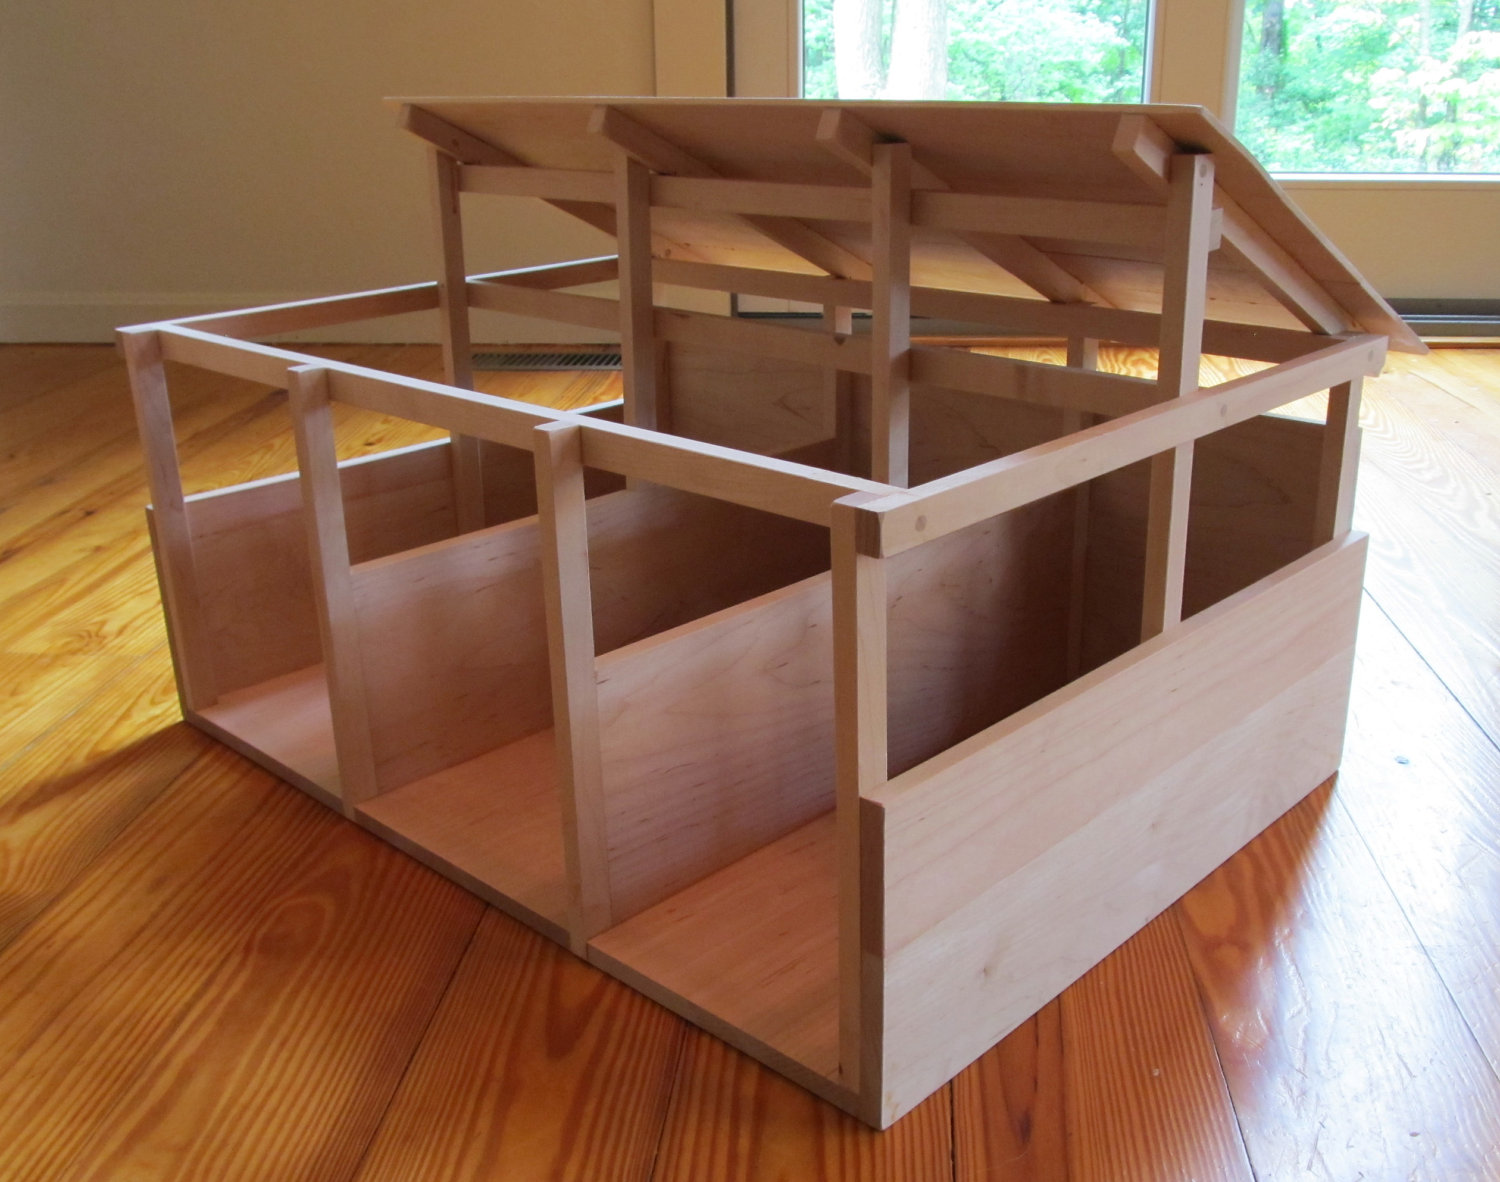 model post and beam solid wood horse barn in maple, breyer